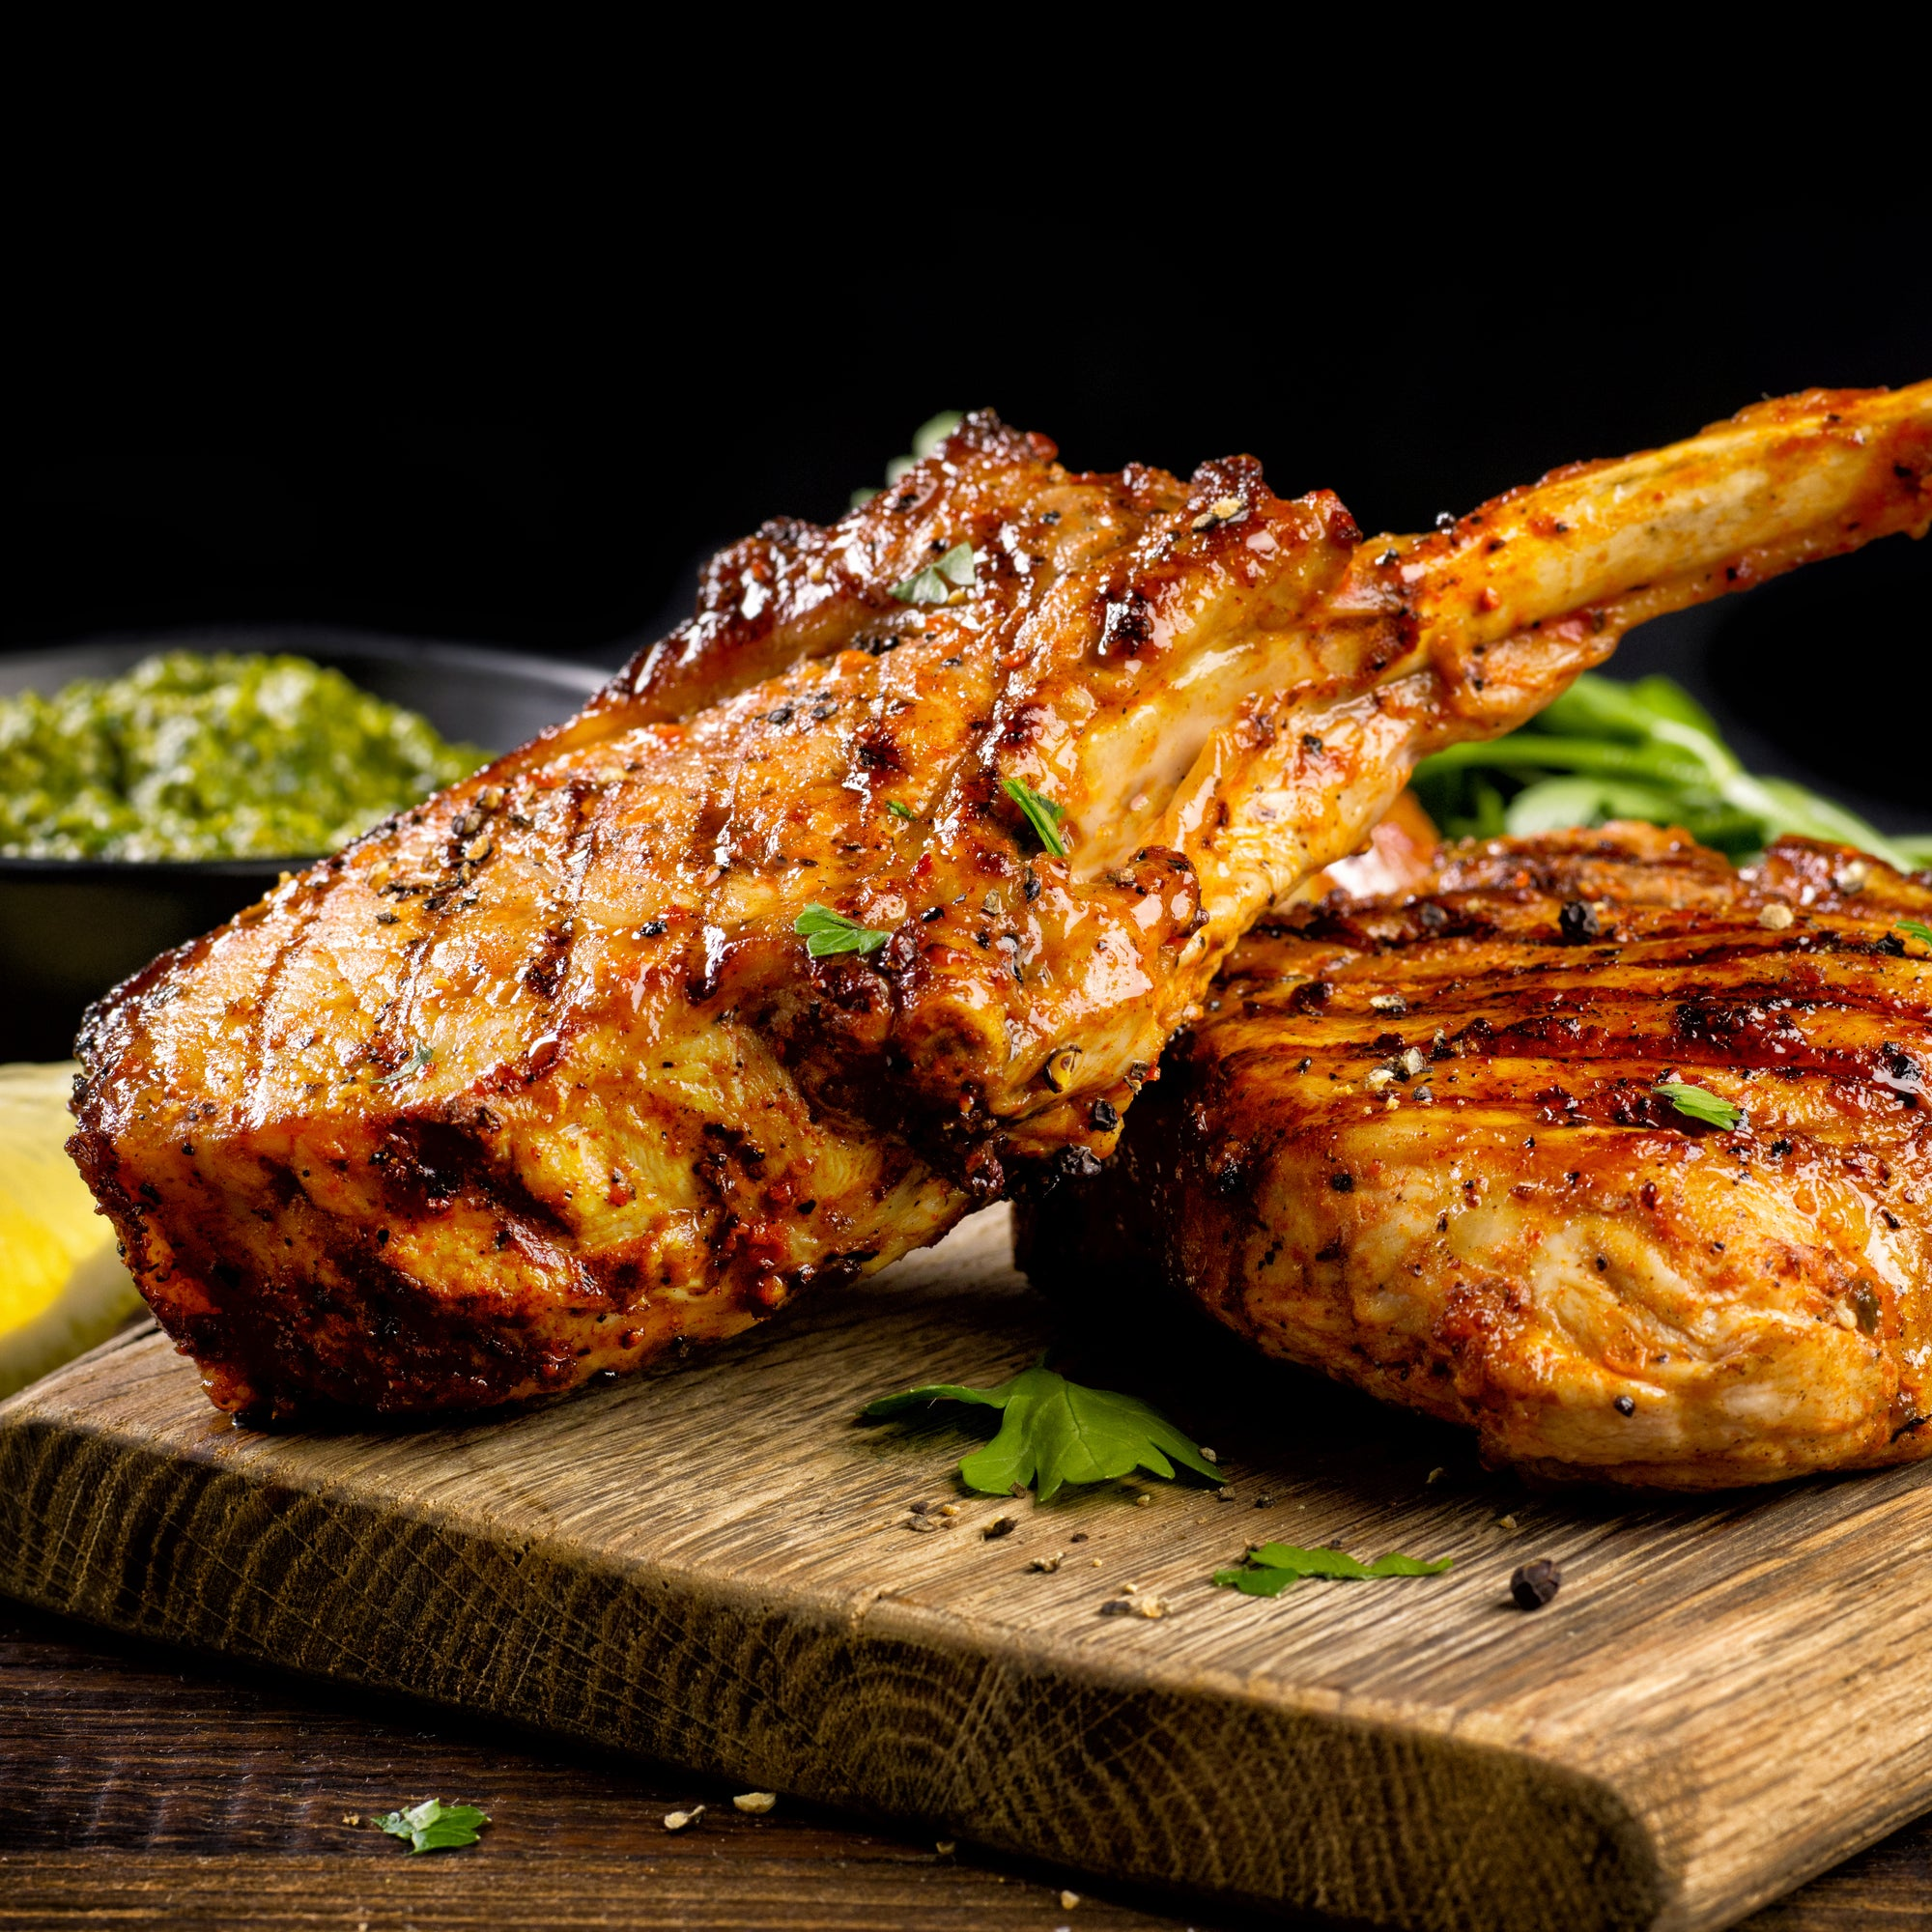 Buy best meats at Kolikof, as recommended by the best chefs in the world.